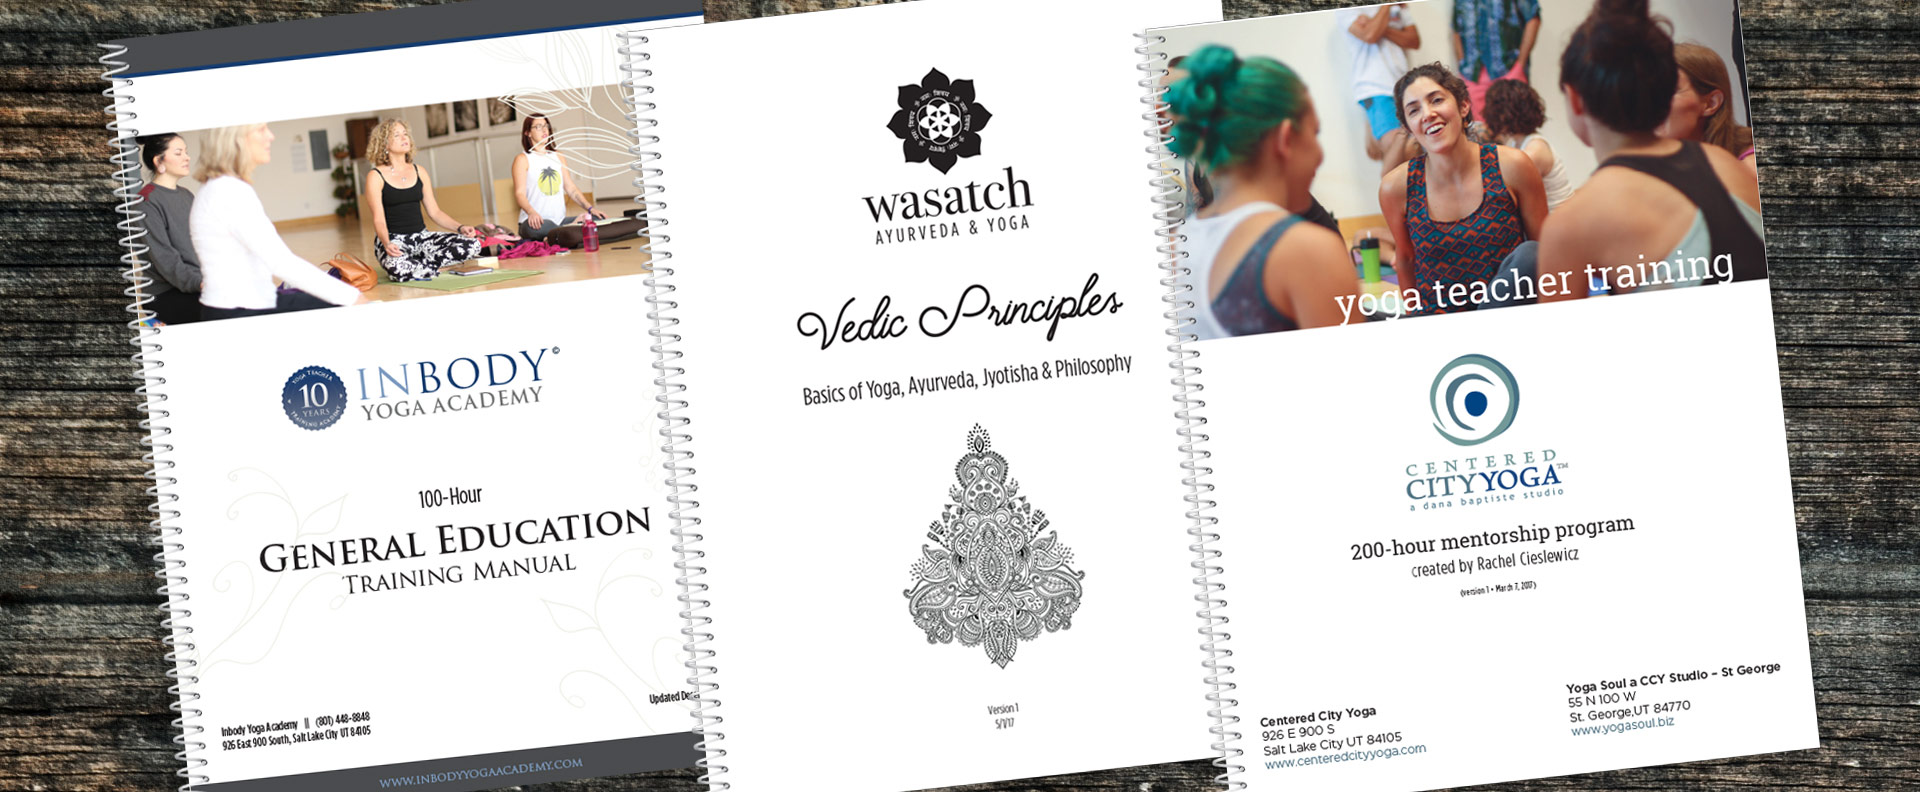 Yoga Teacher Training Manual Design and Writing